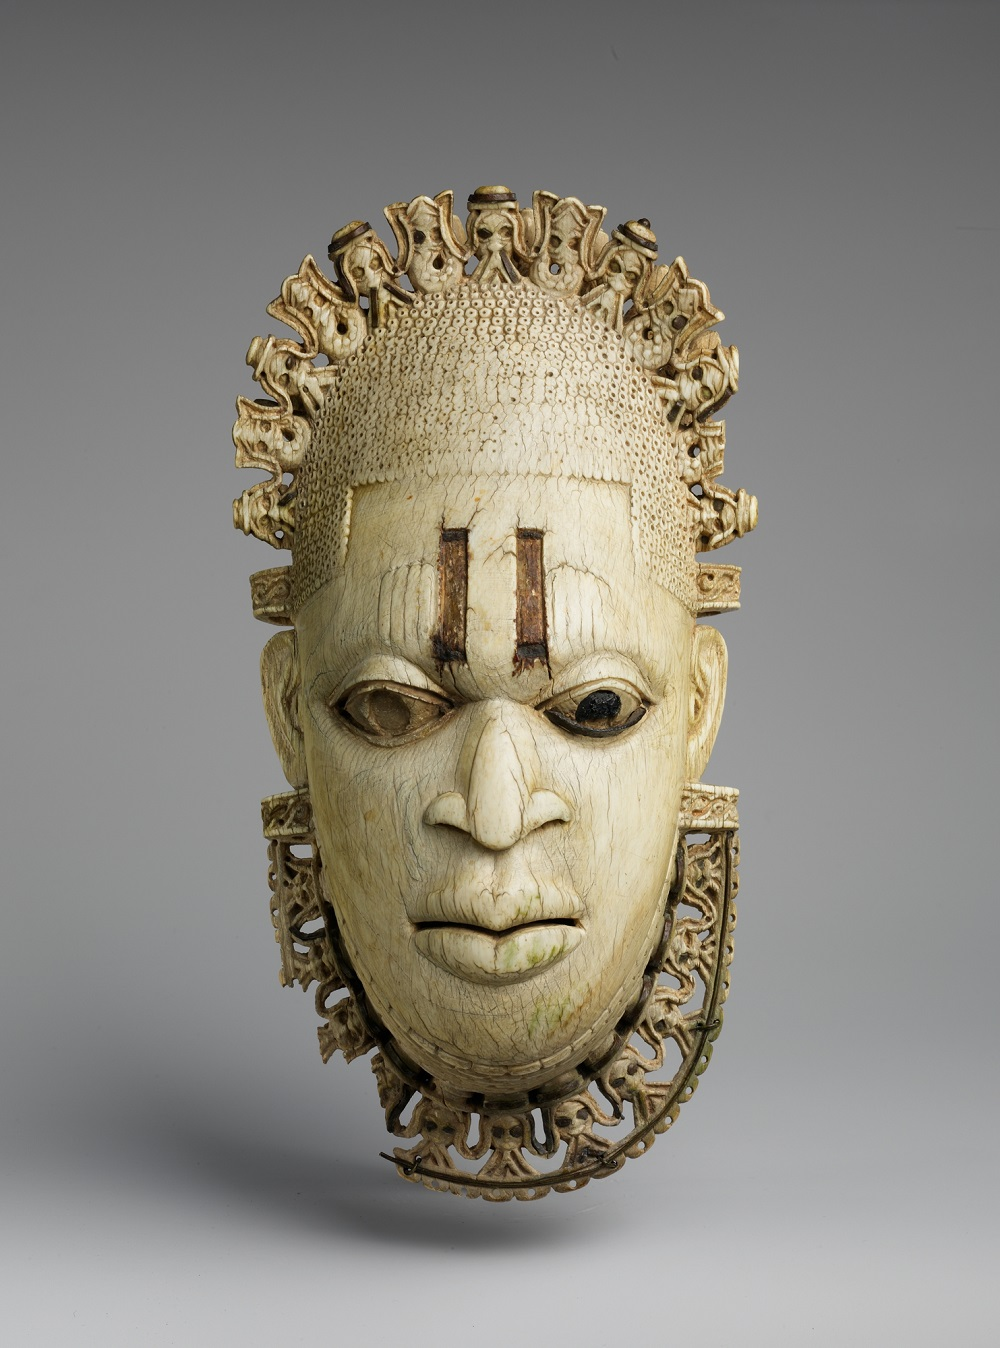 Queen Idia Mask